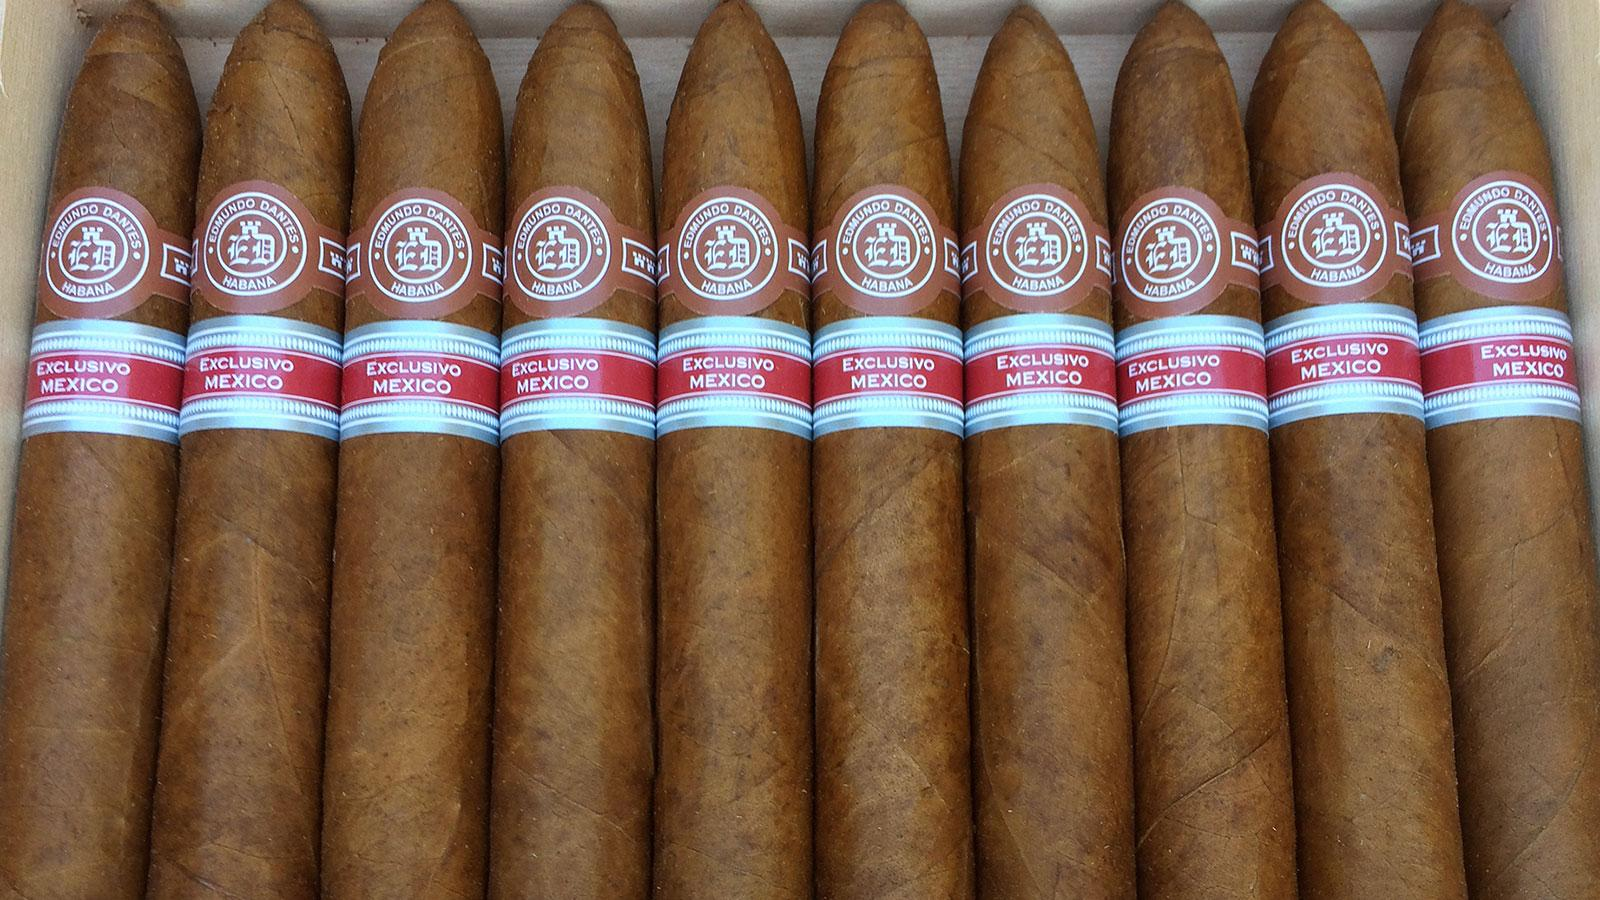 Mexico's New Regional Cigar Arrives